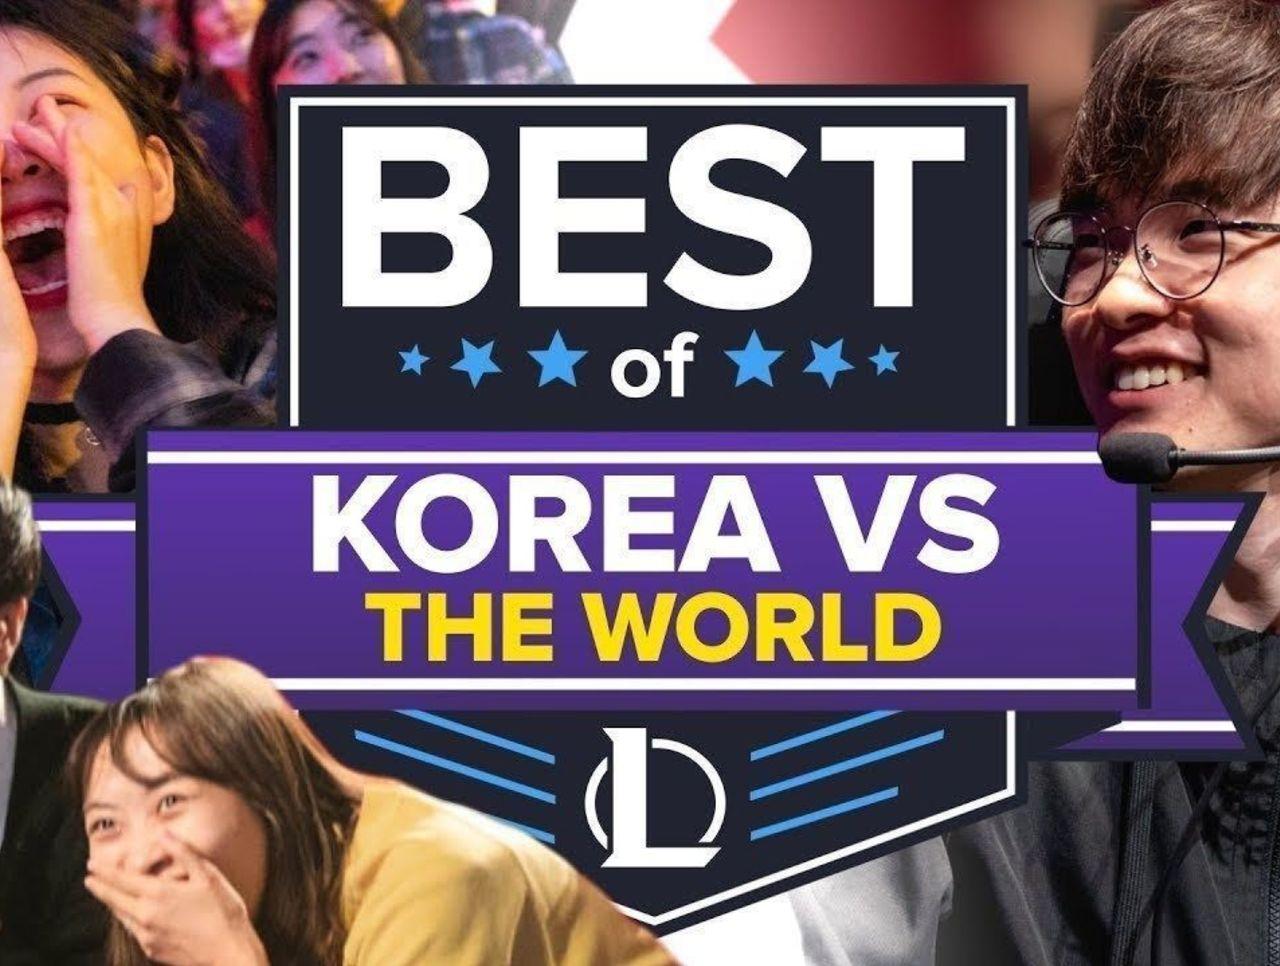 The Best of Korean LoL Teams Dumpstering the Rest of the World